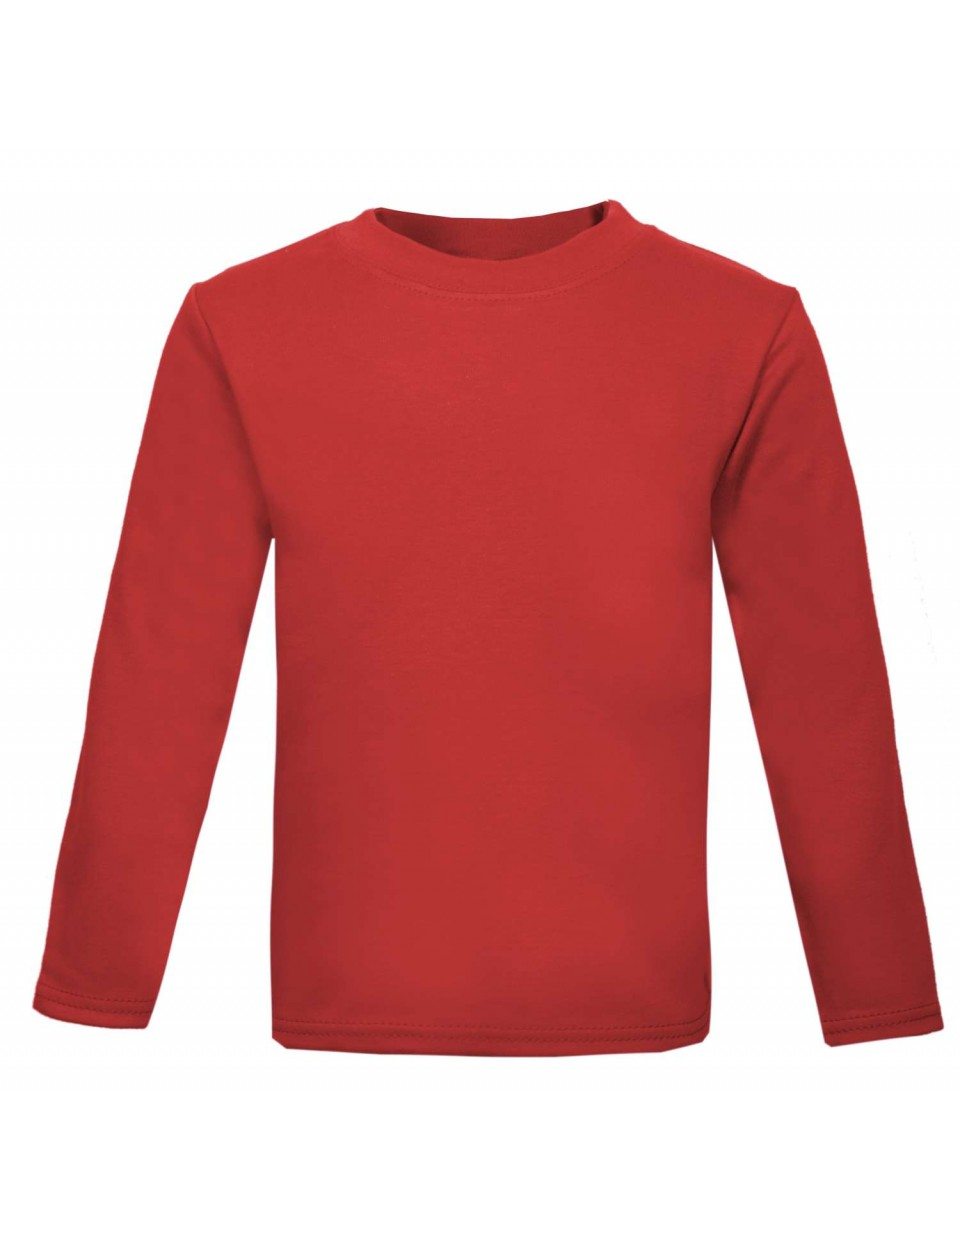 Our soft cotton and cotton blend men's long sleeve t-shirts are synonymous with comfort, style, and fit. Loaded with features including double stitching at the hem and sleeves, moisture-wicking fabrics, and our famous comfort tag-free label, our long sleeve t shirts are perfect for casual Fridays and weekend wear.